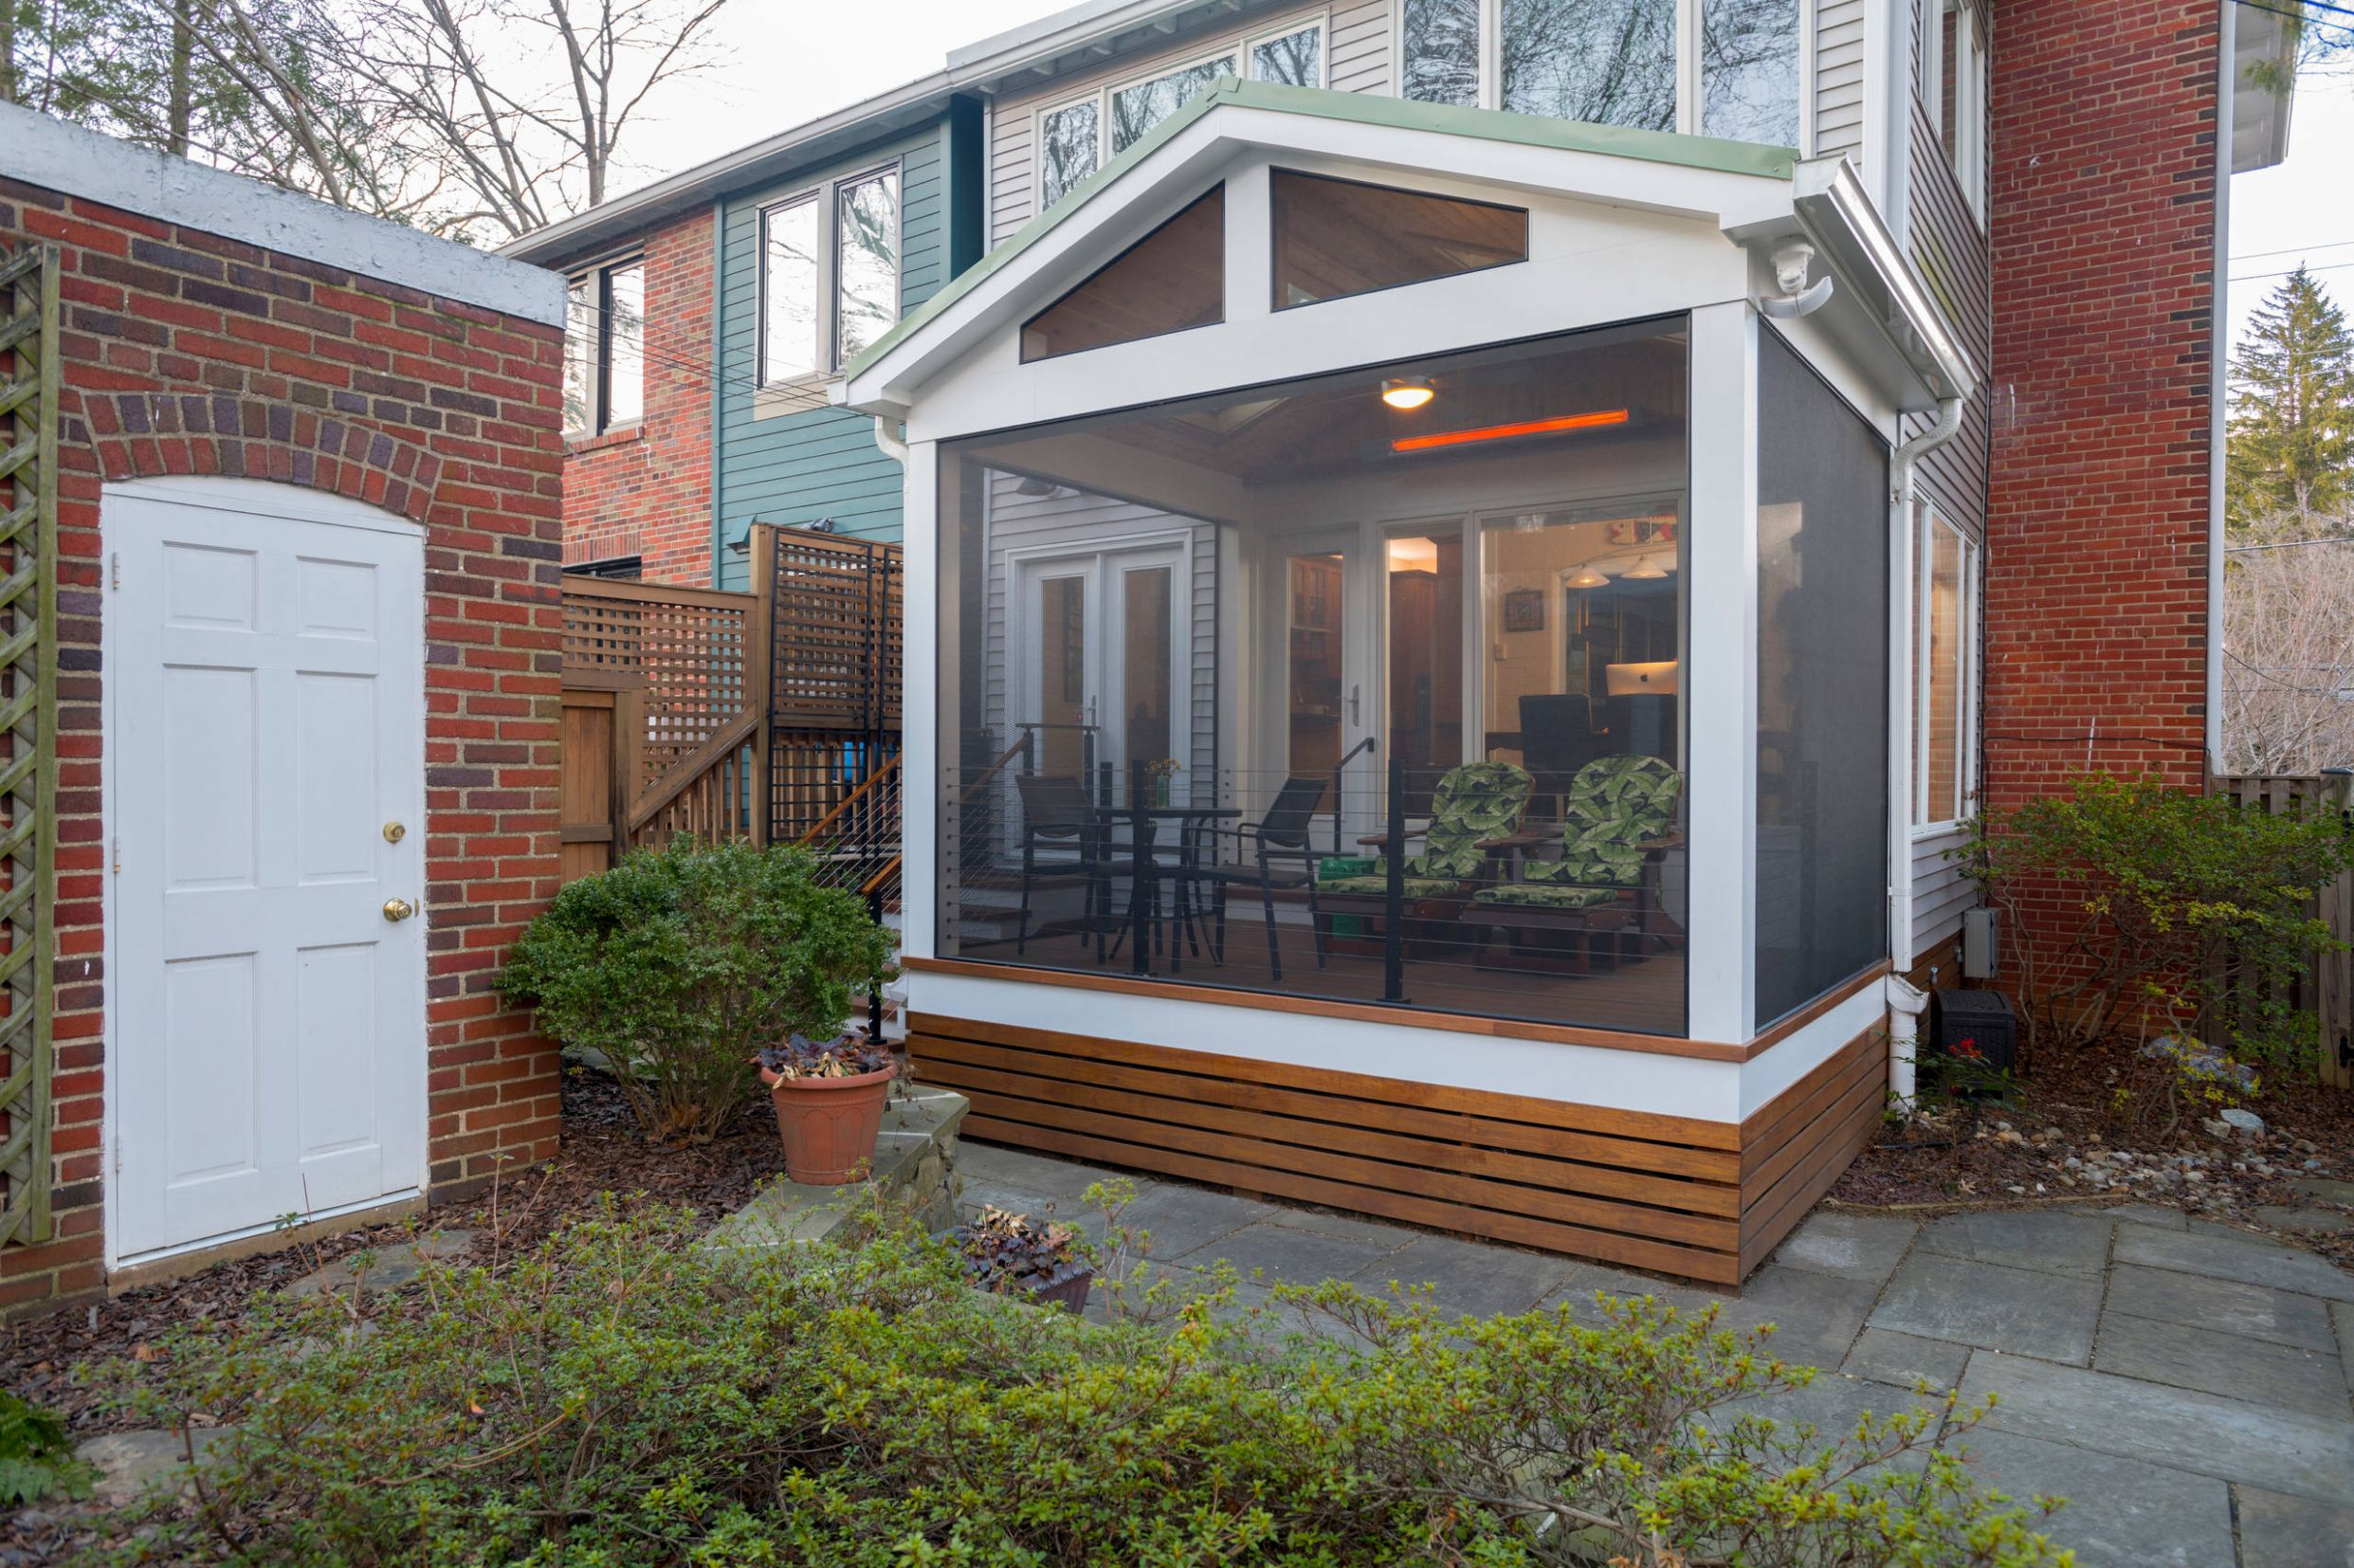 12 Beautiful Modern Screened-In Porch Pictures & Ideas | Houzz - modern front porch ideas australia